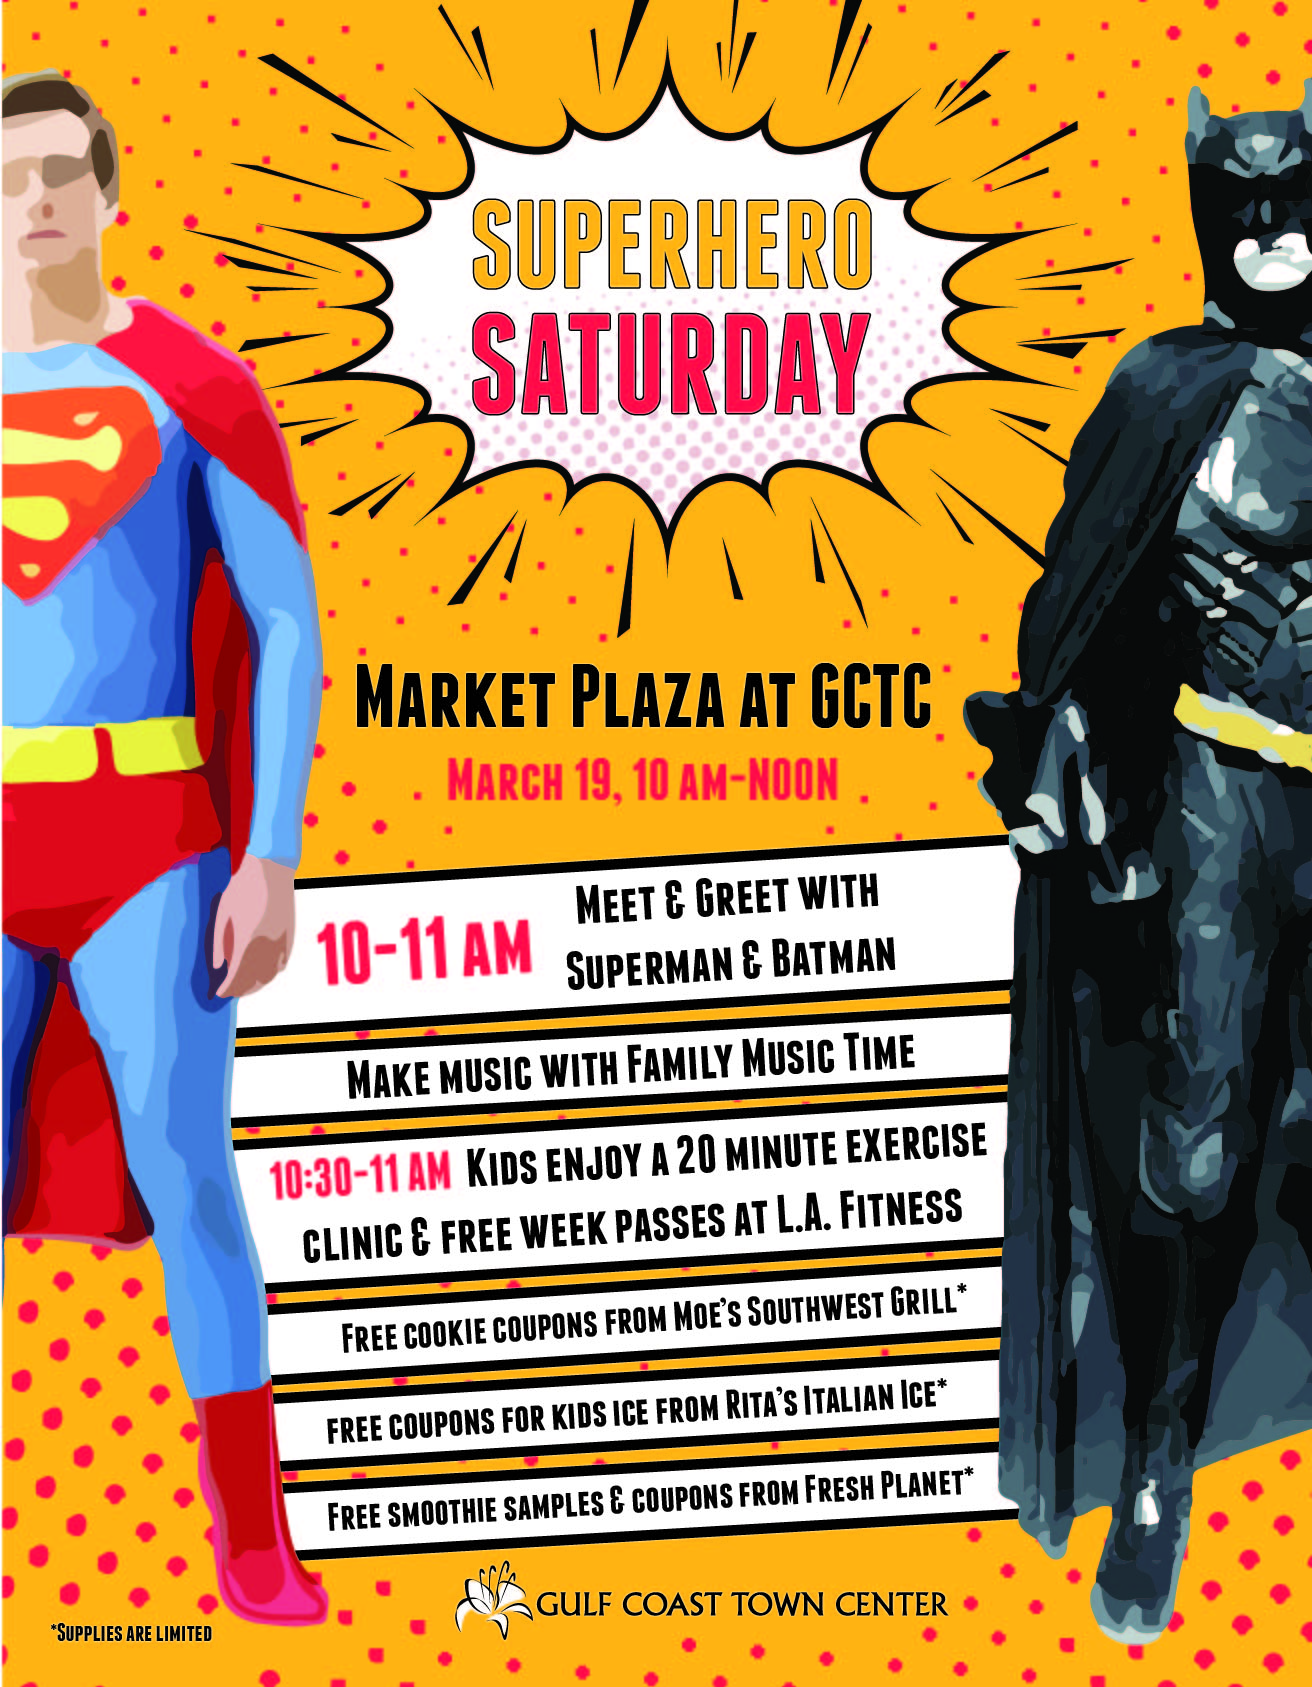 20160319 GCTC Superhero Saturday Flyer.jpg